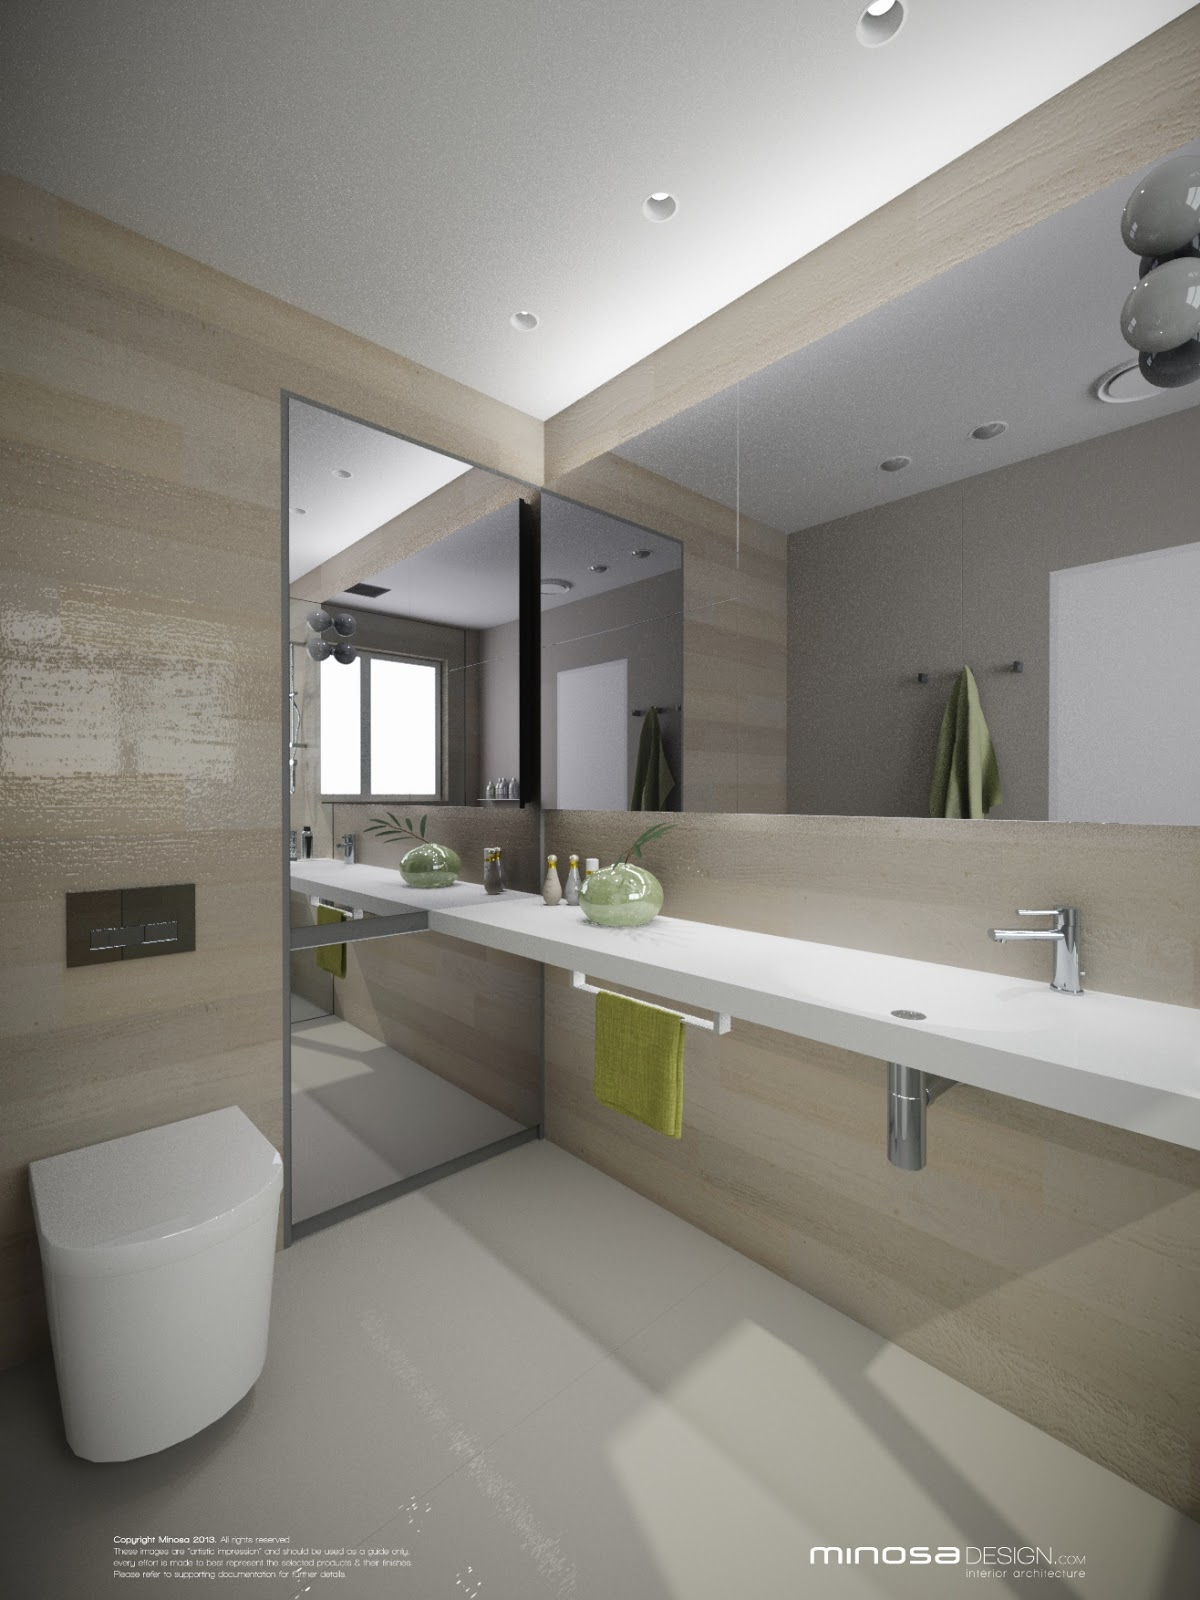 Minosa bringing sexy back the modern bathroom for Ensuite lighting ideas